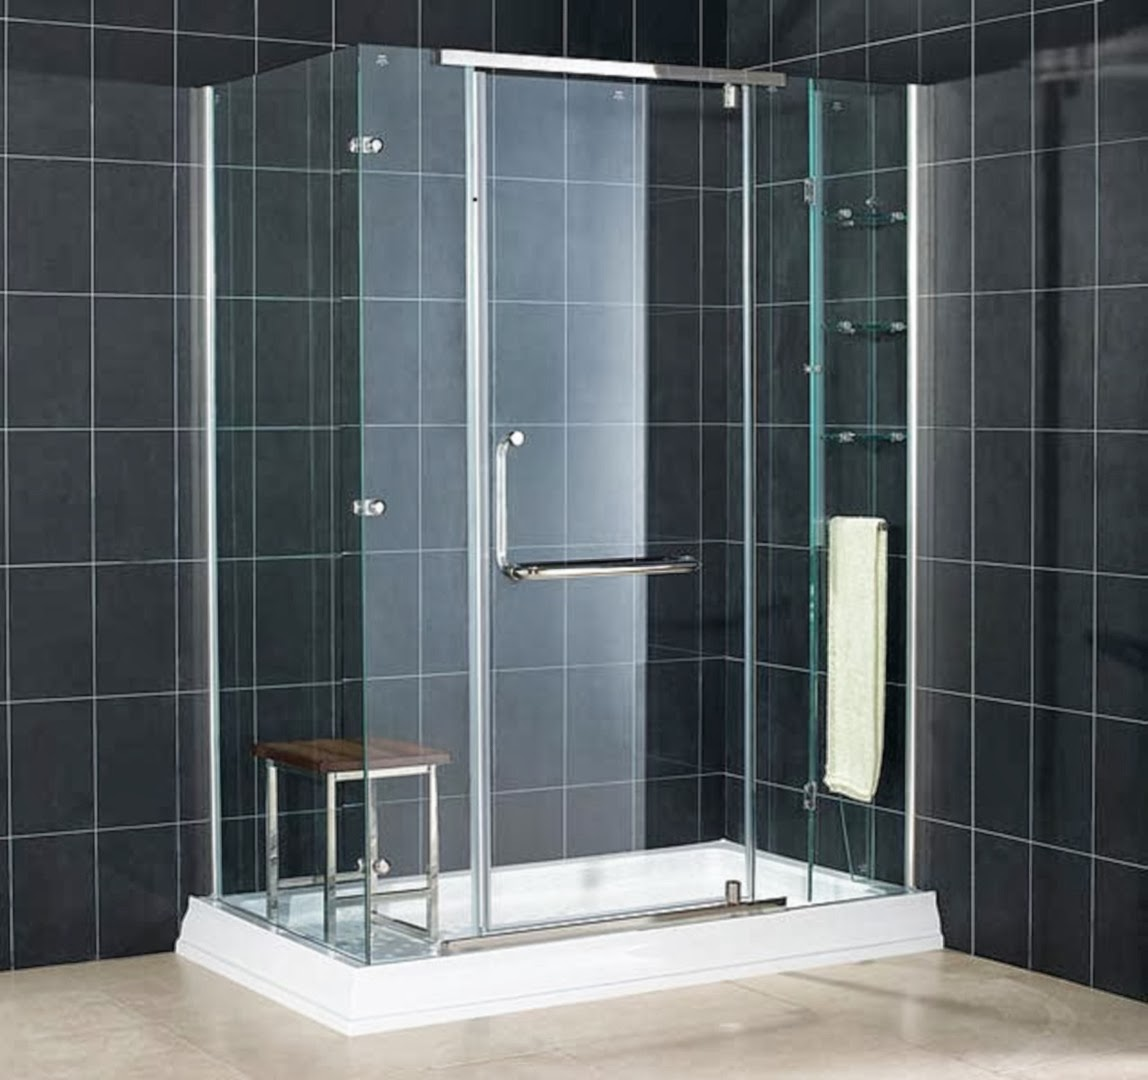 Bathroom Planner Software Free Download | Home Decorating ...